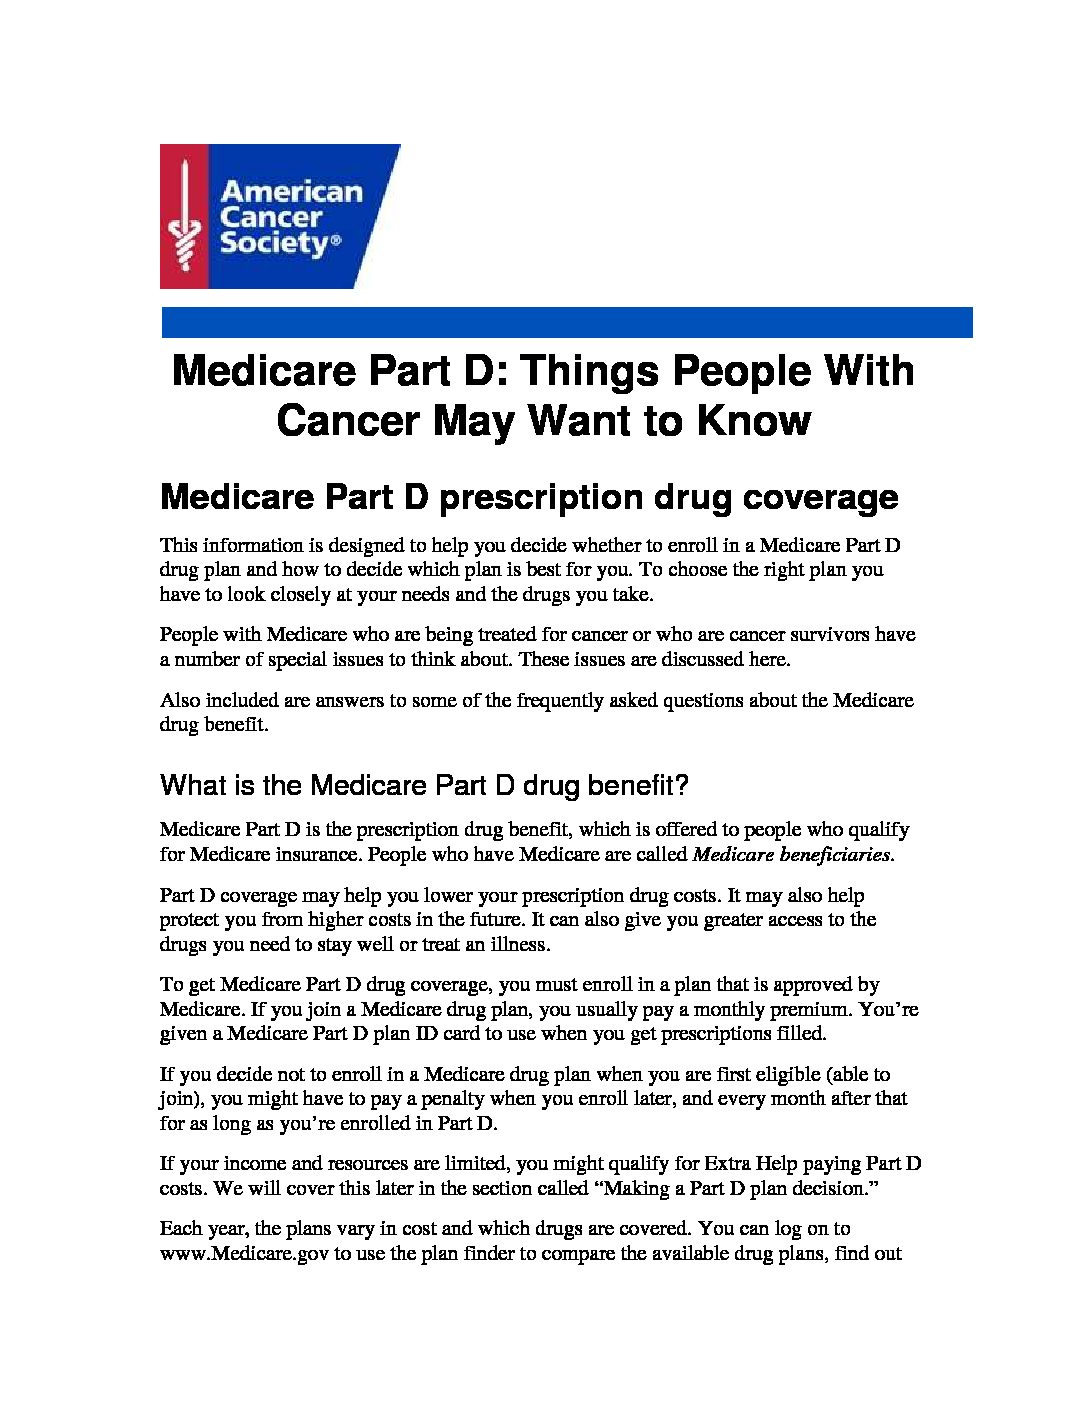 Part D (cancer) Resources For Medicare Beneficiaries Resources Federal  Employees Health Benefits Employee Health